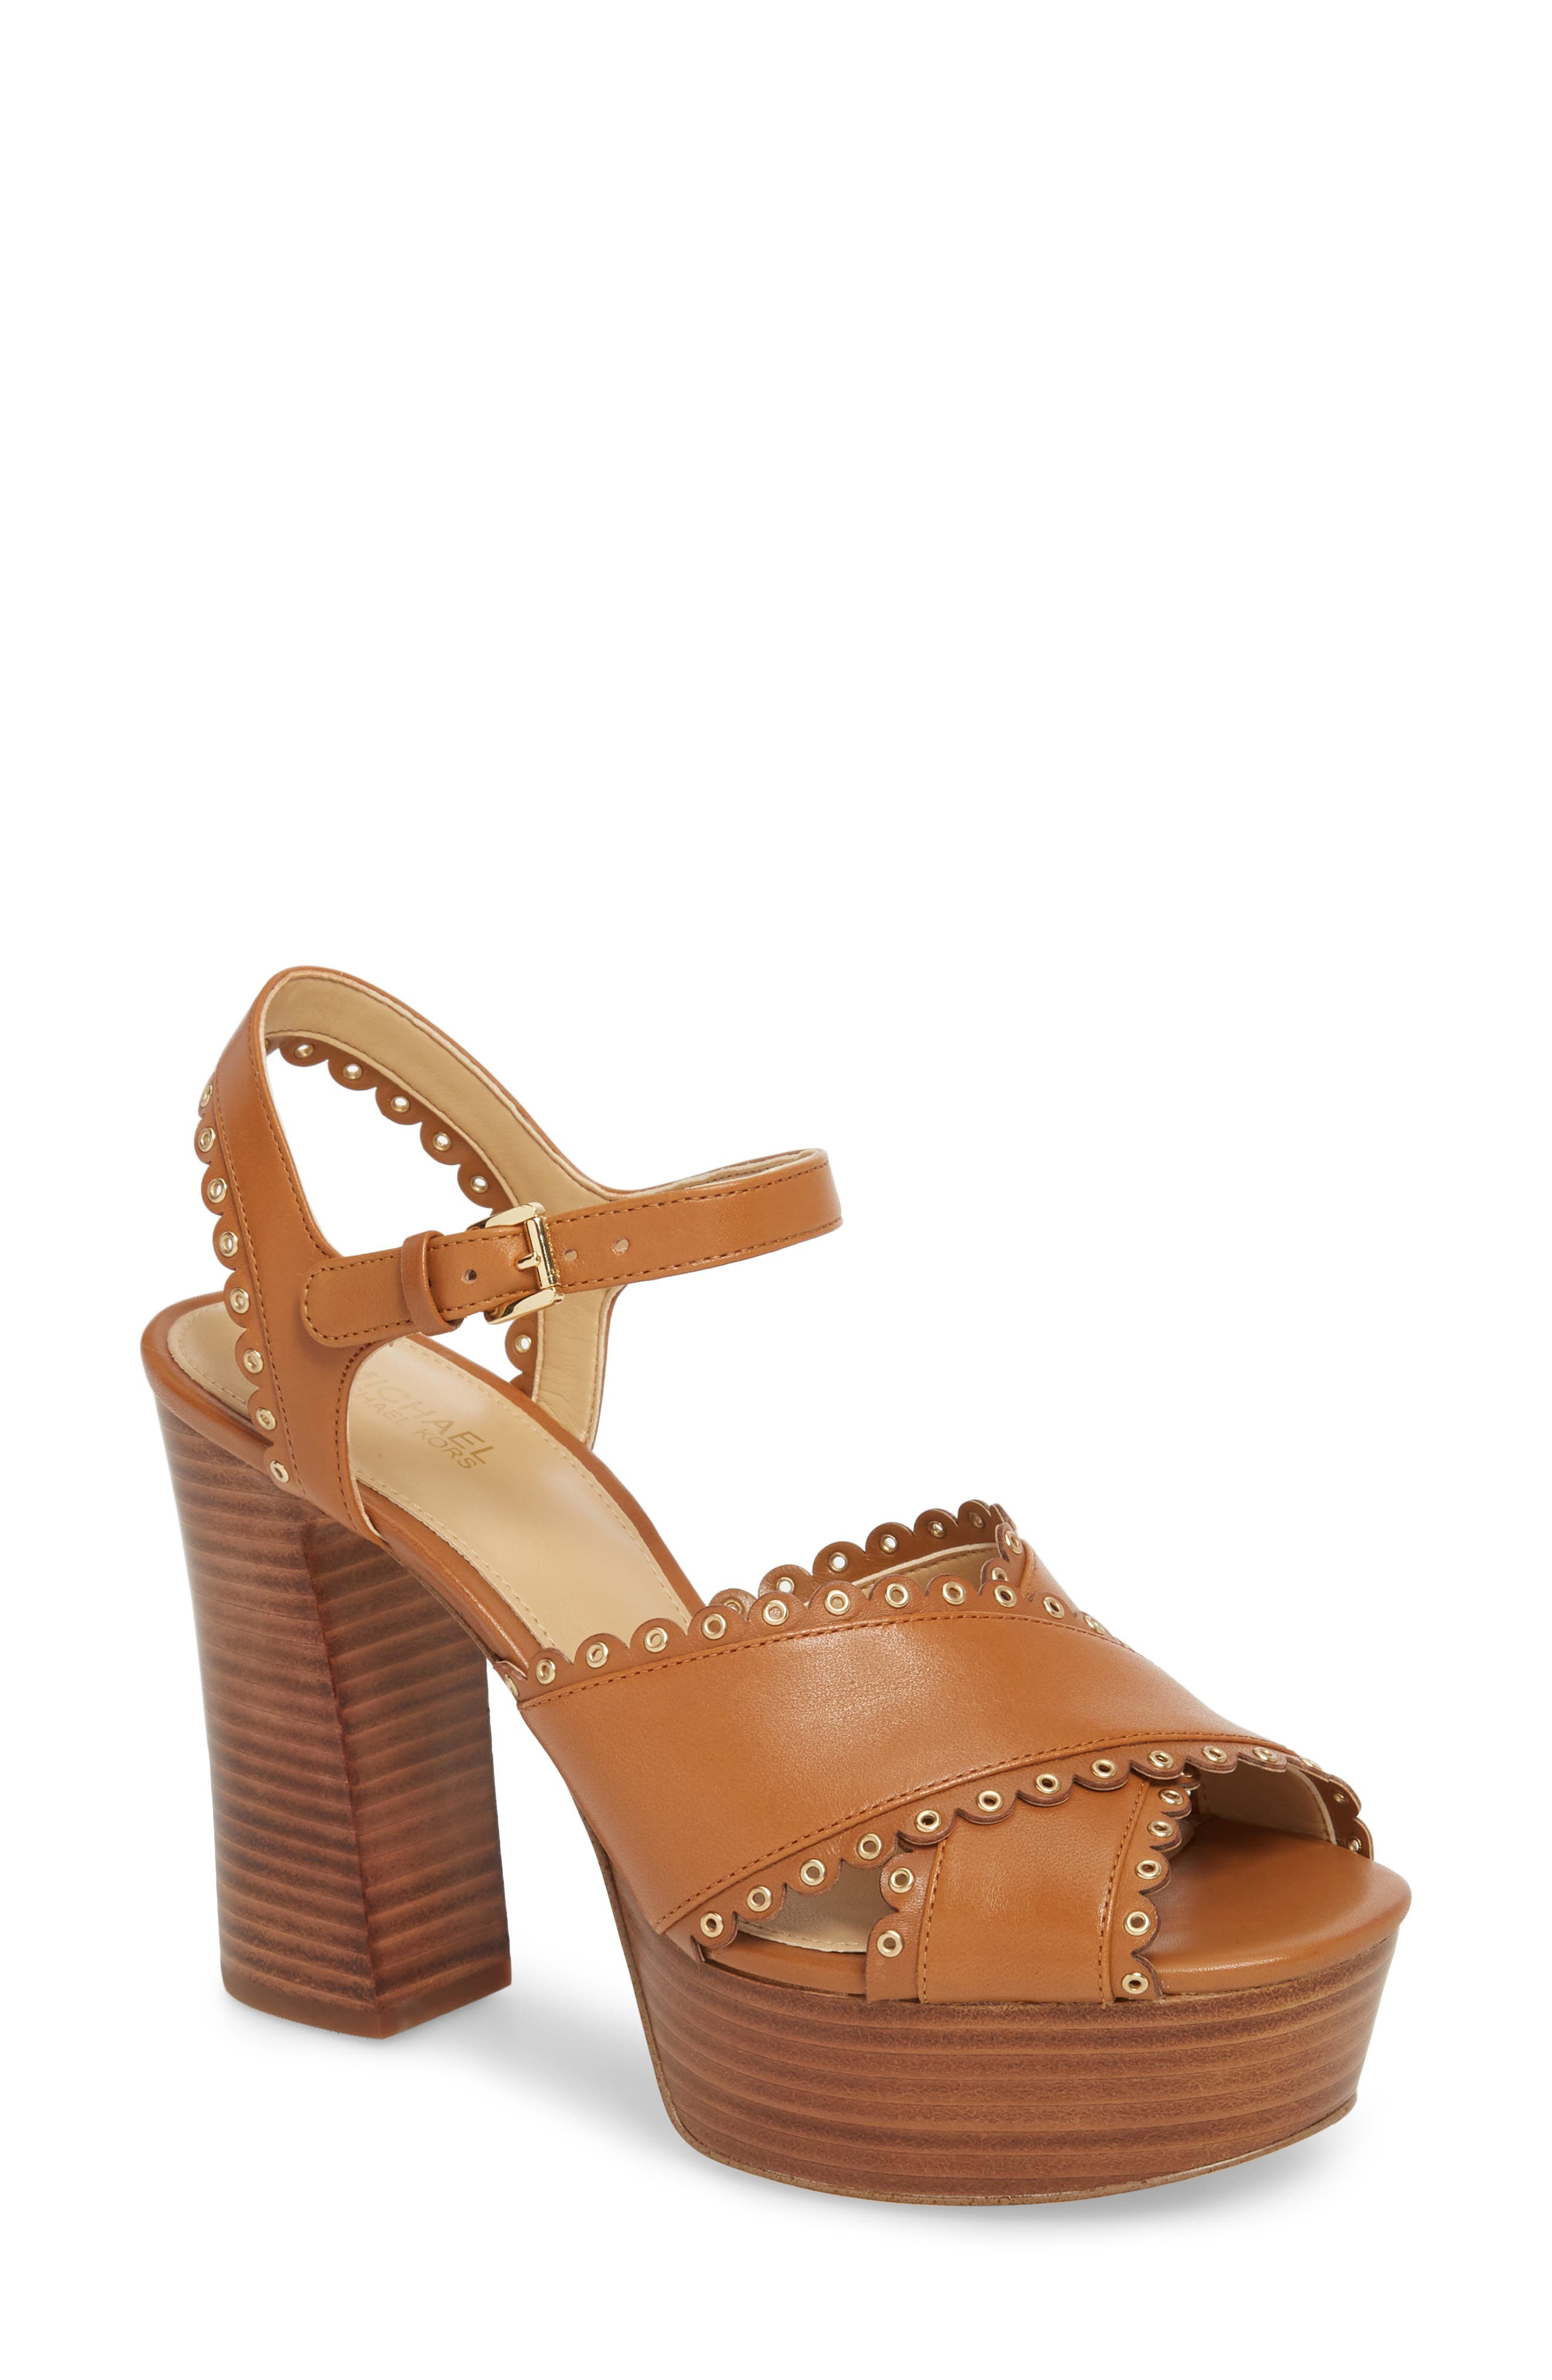 Jessie Platform Sandal,                         Main,                         color,